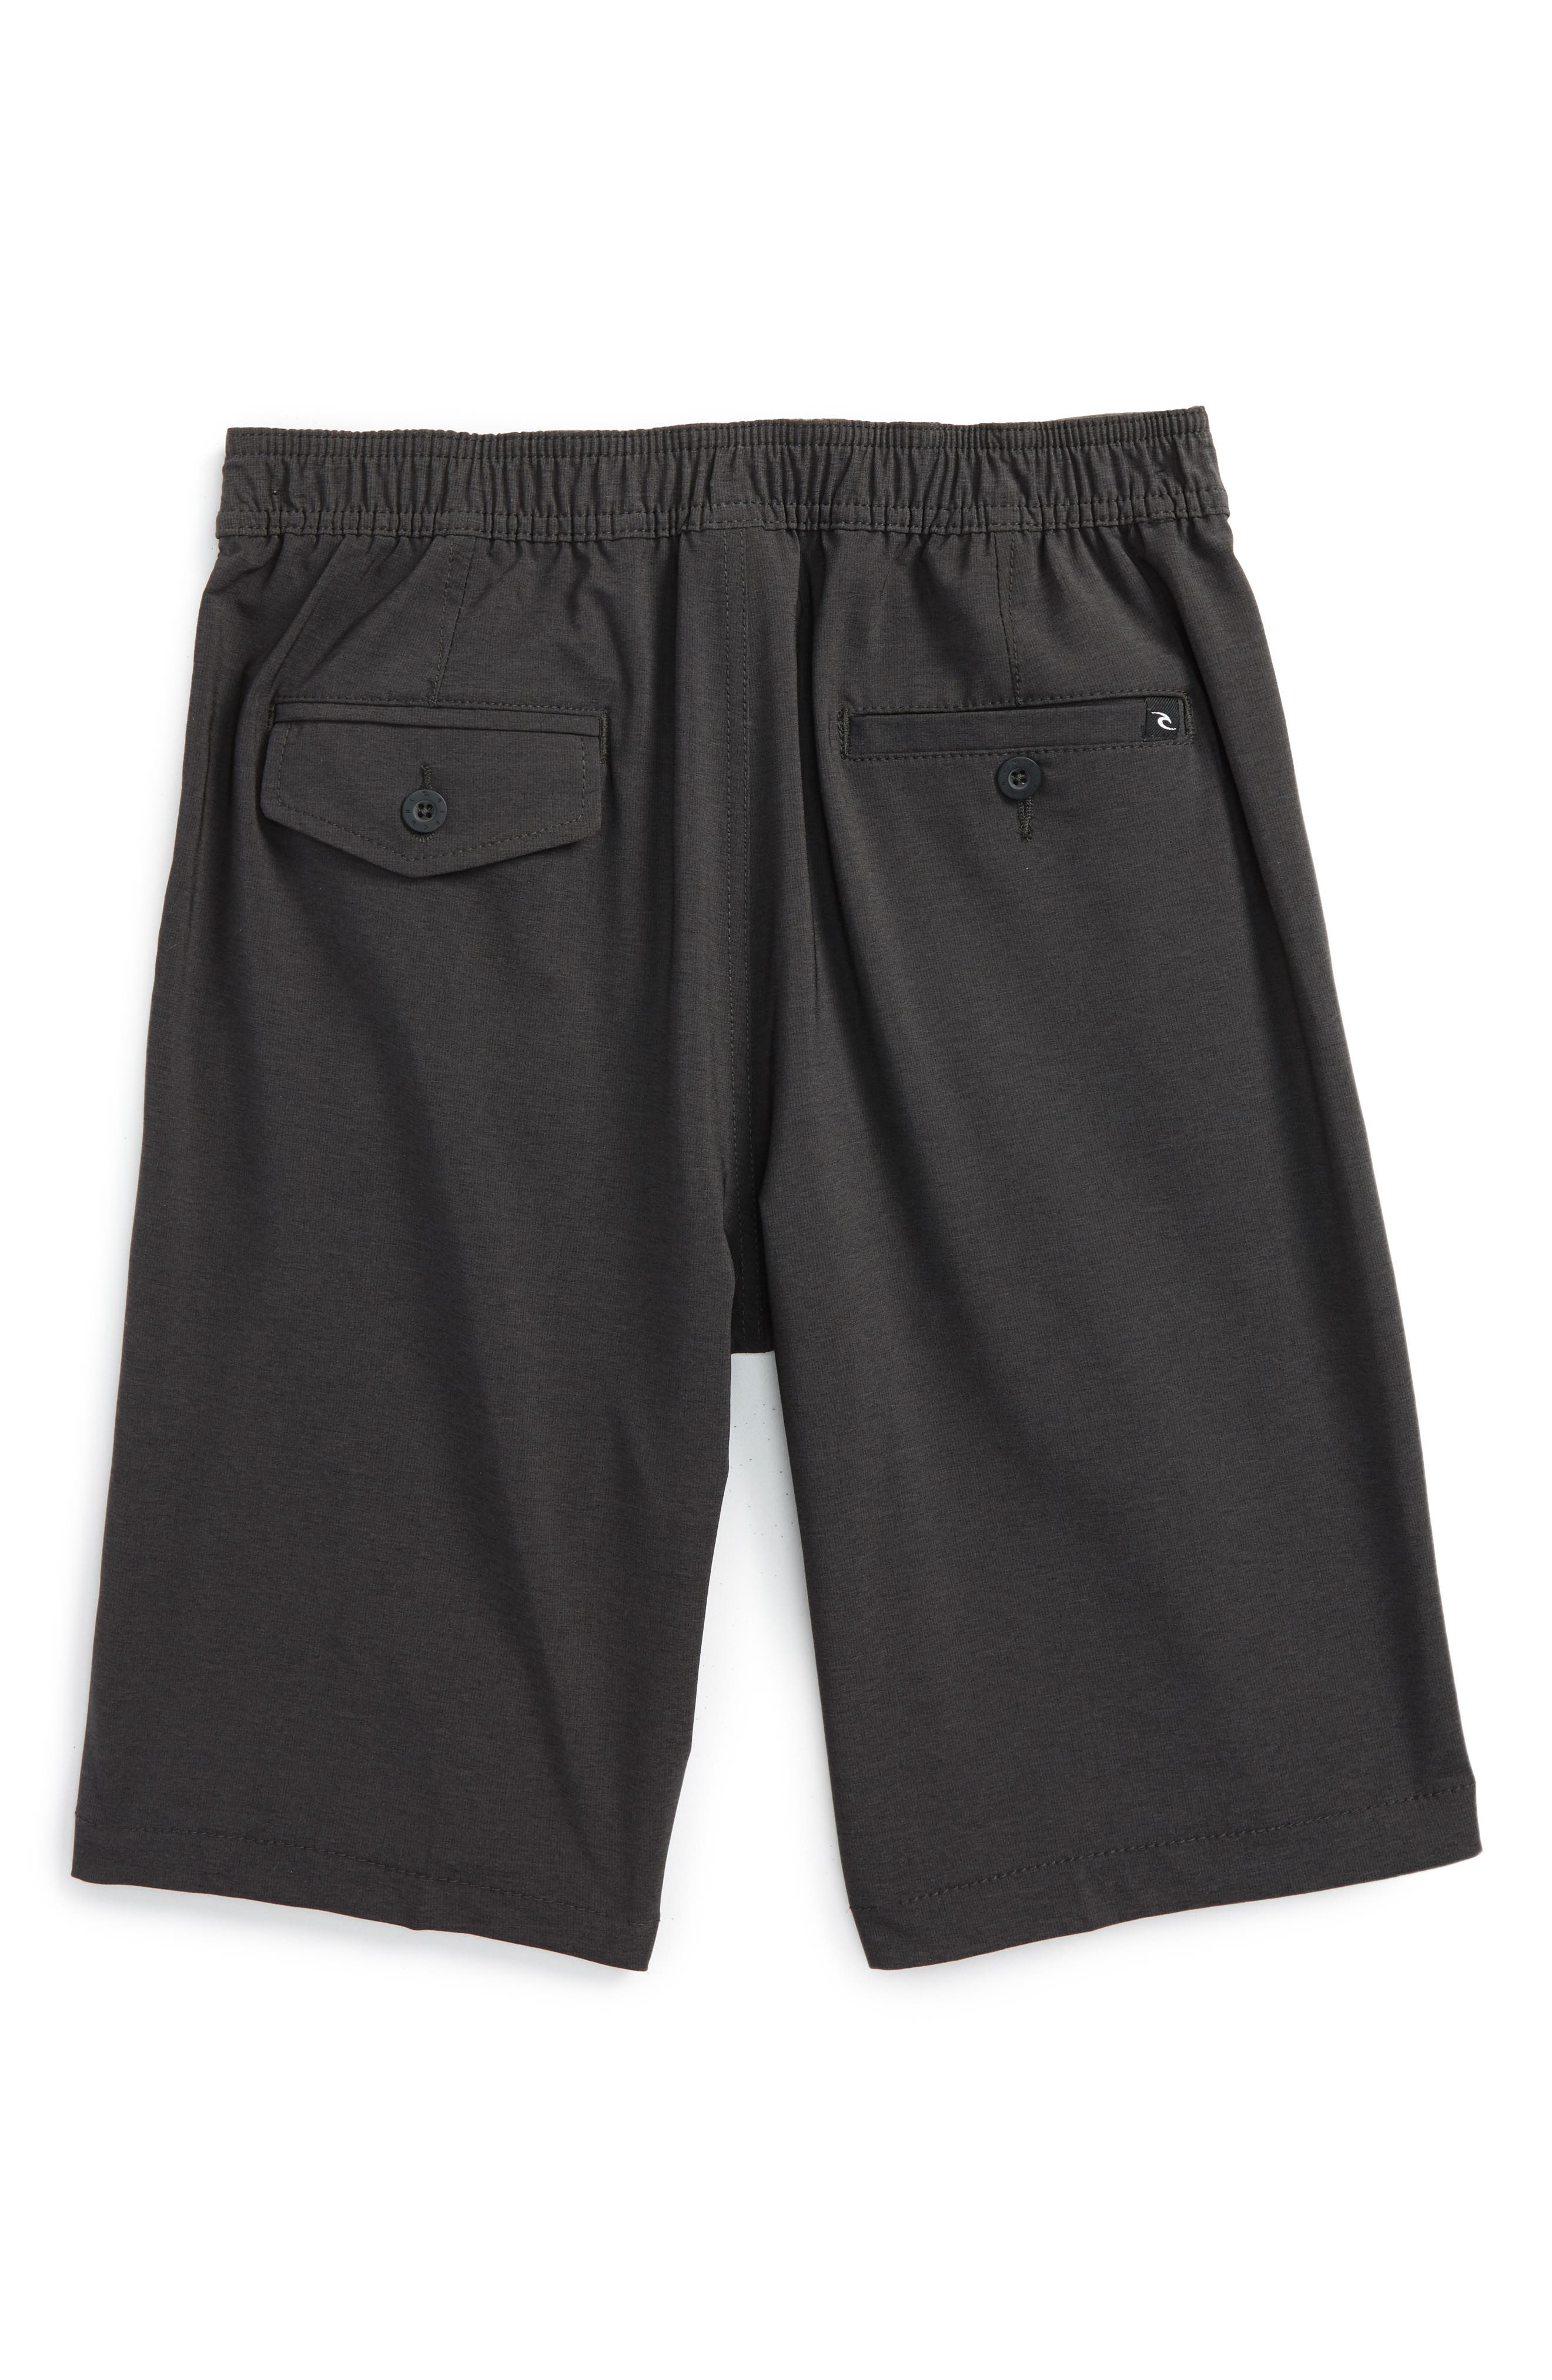 Omaha Hybrid Board Shorts,                             Main thumbnail 1, color,                             BLACK